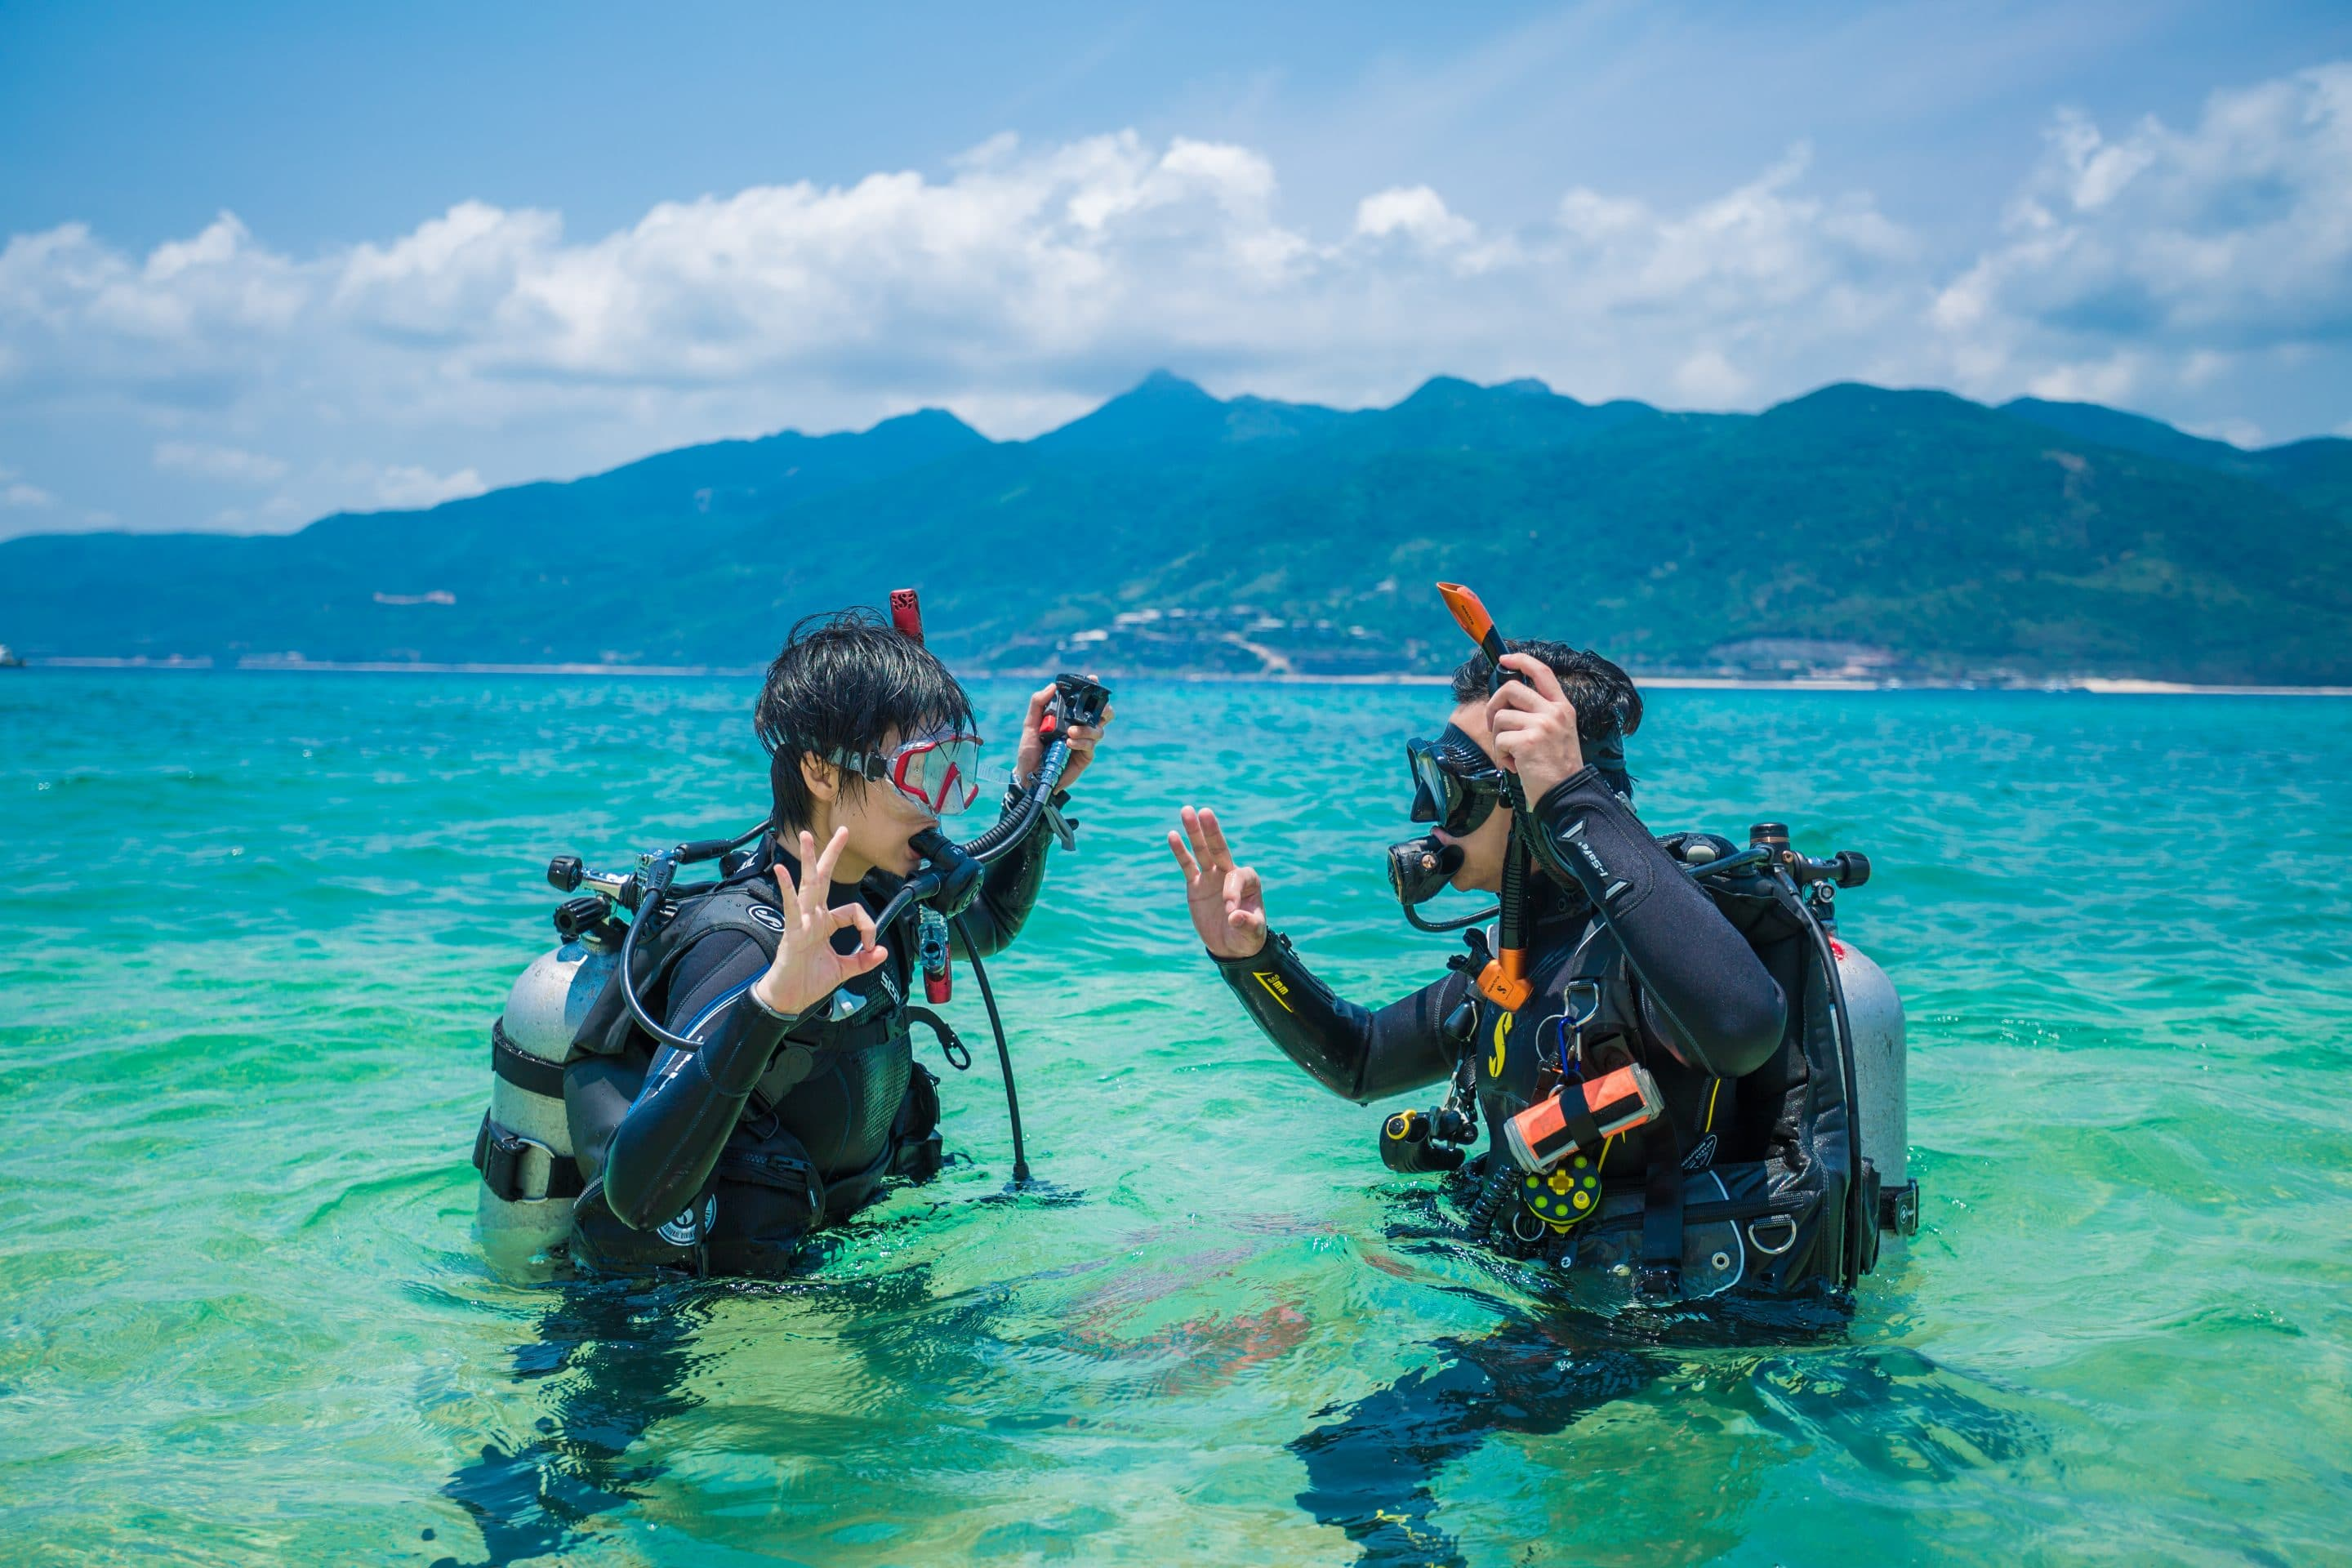 2 scuba divers training in the water